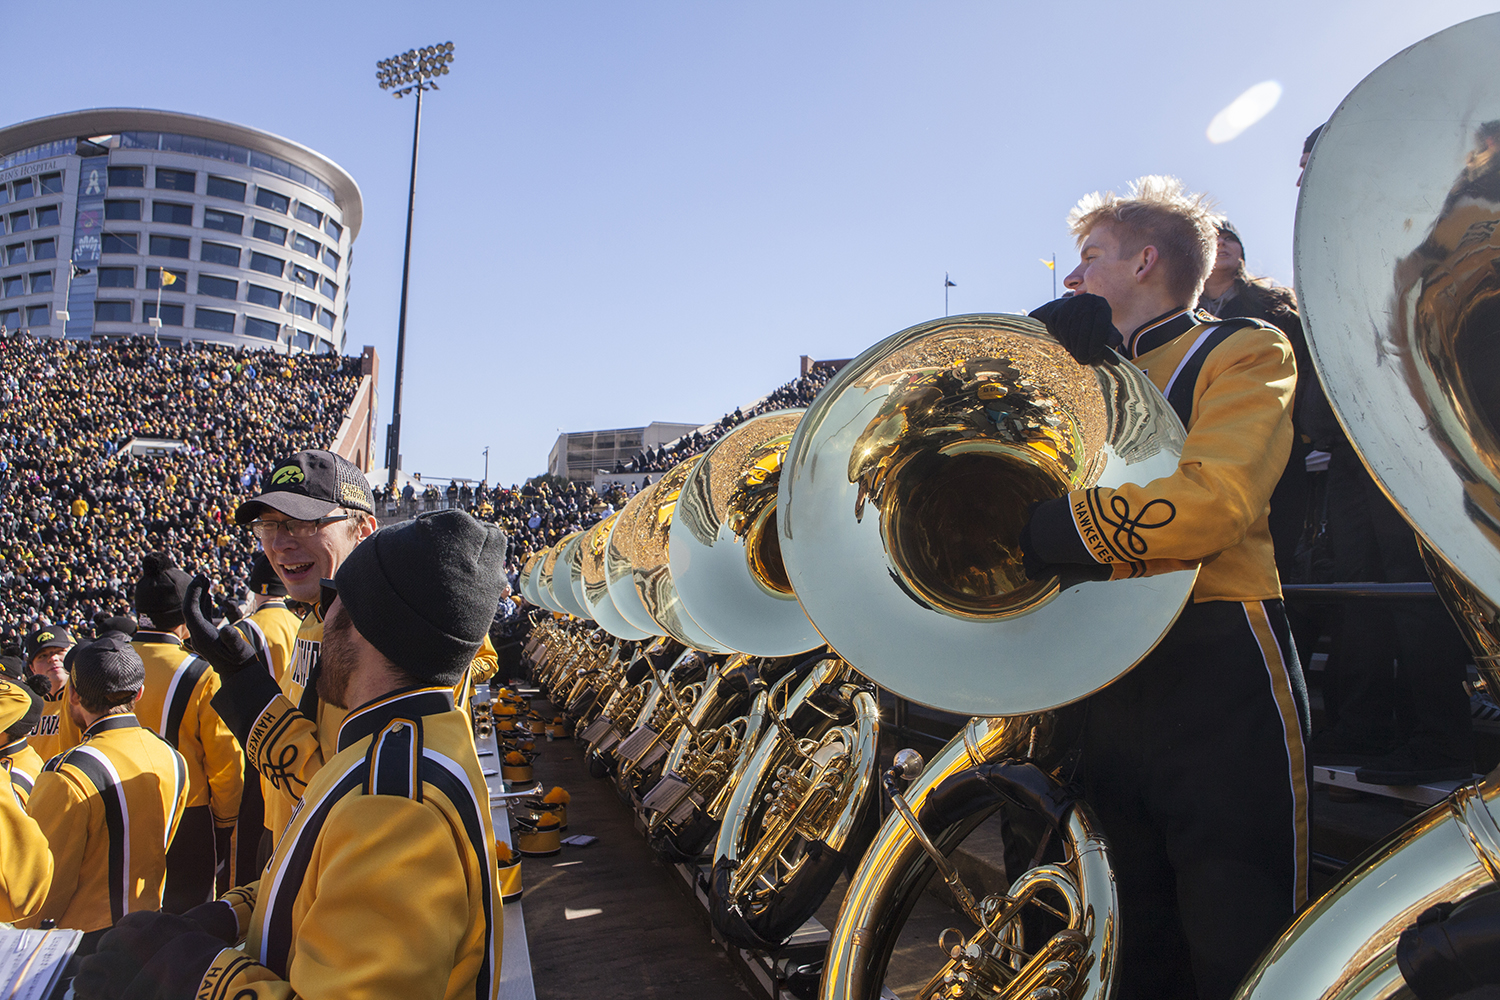 Members+of+the+band+pause+from+playing+during+the+Iowa+vs.+Maryland+game+at+Kinnick+stadium+on+Saturday+Oct.+20%2C+2018.+The+Hawkeyes+defeated+the+Terrapins+23-0.